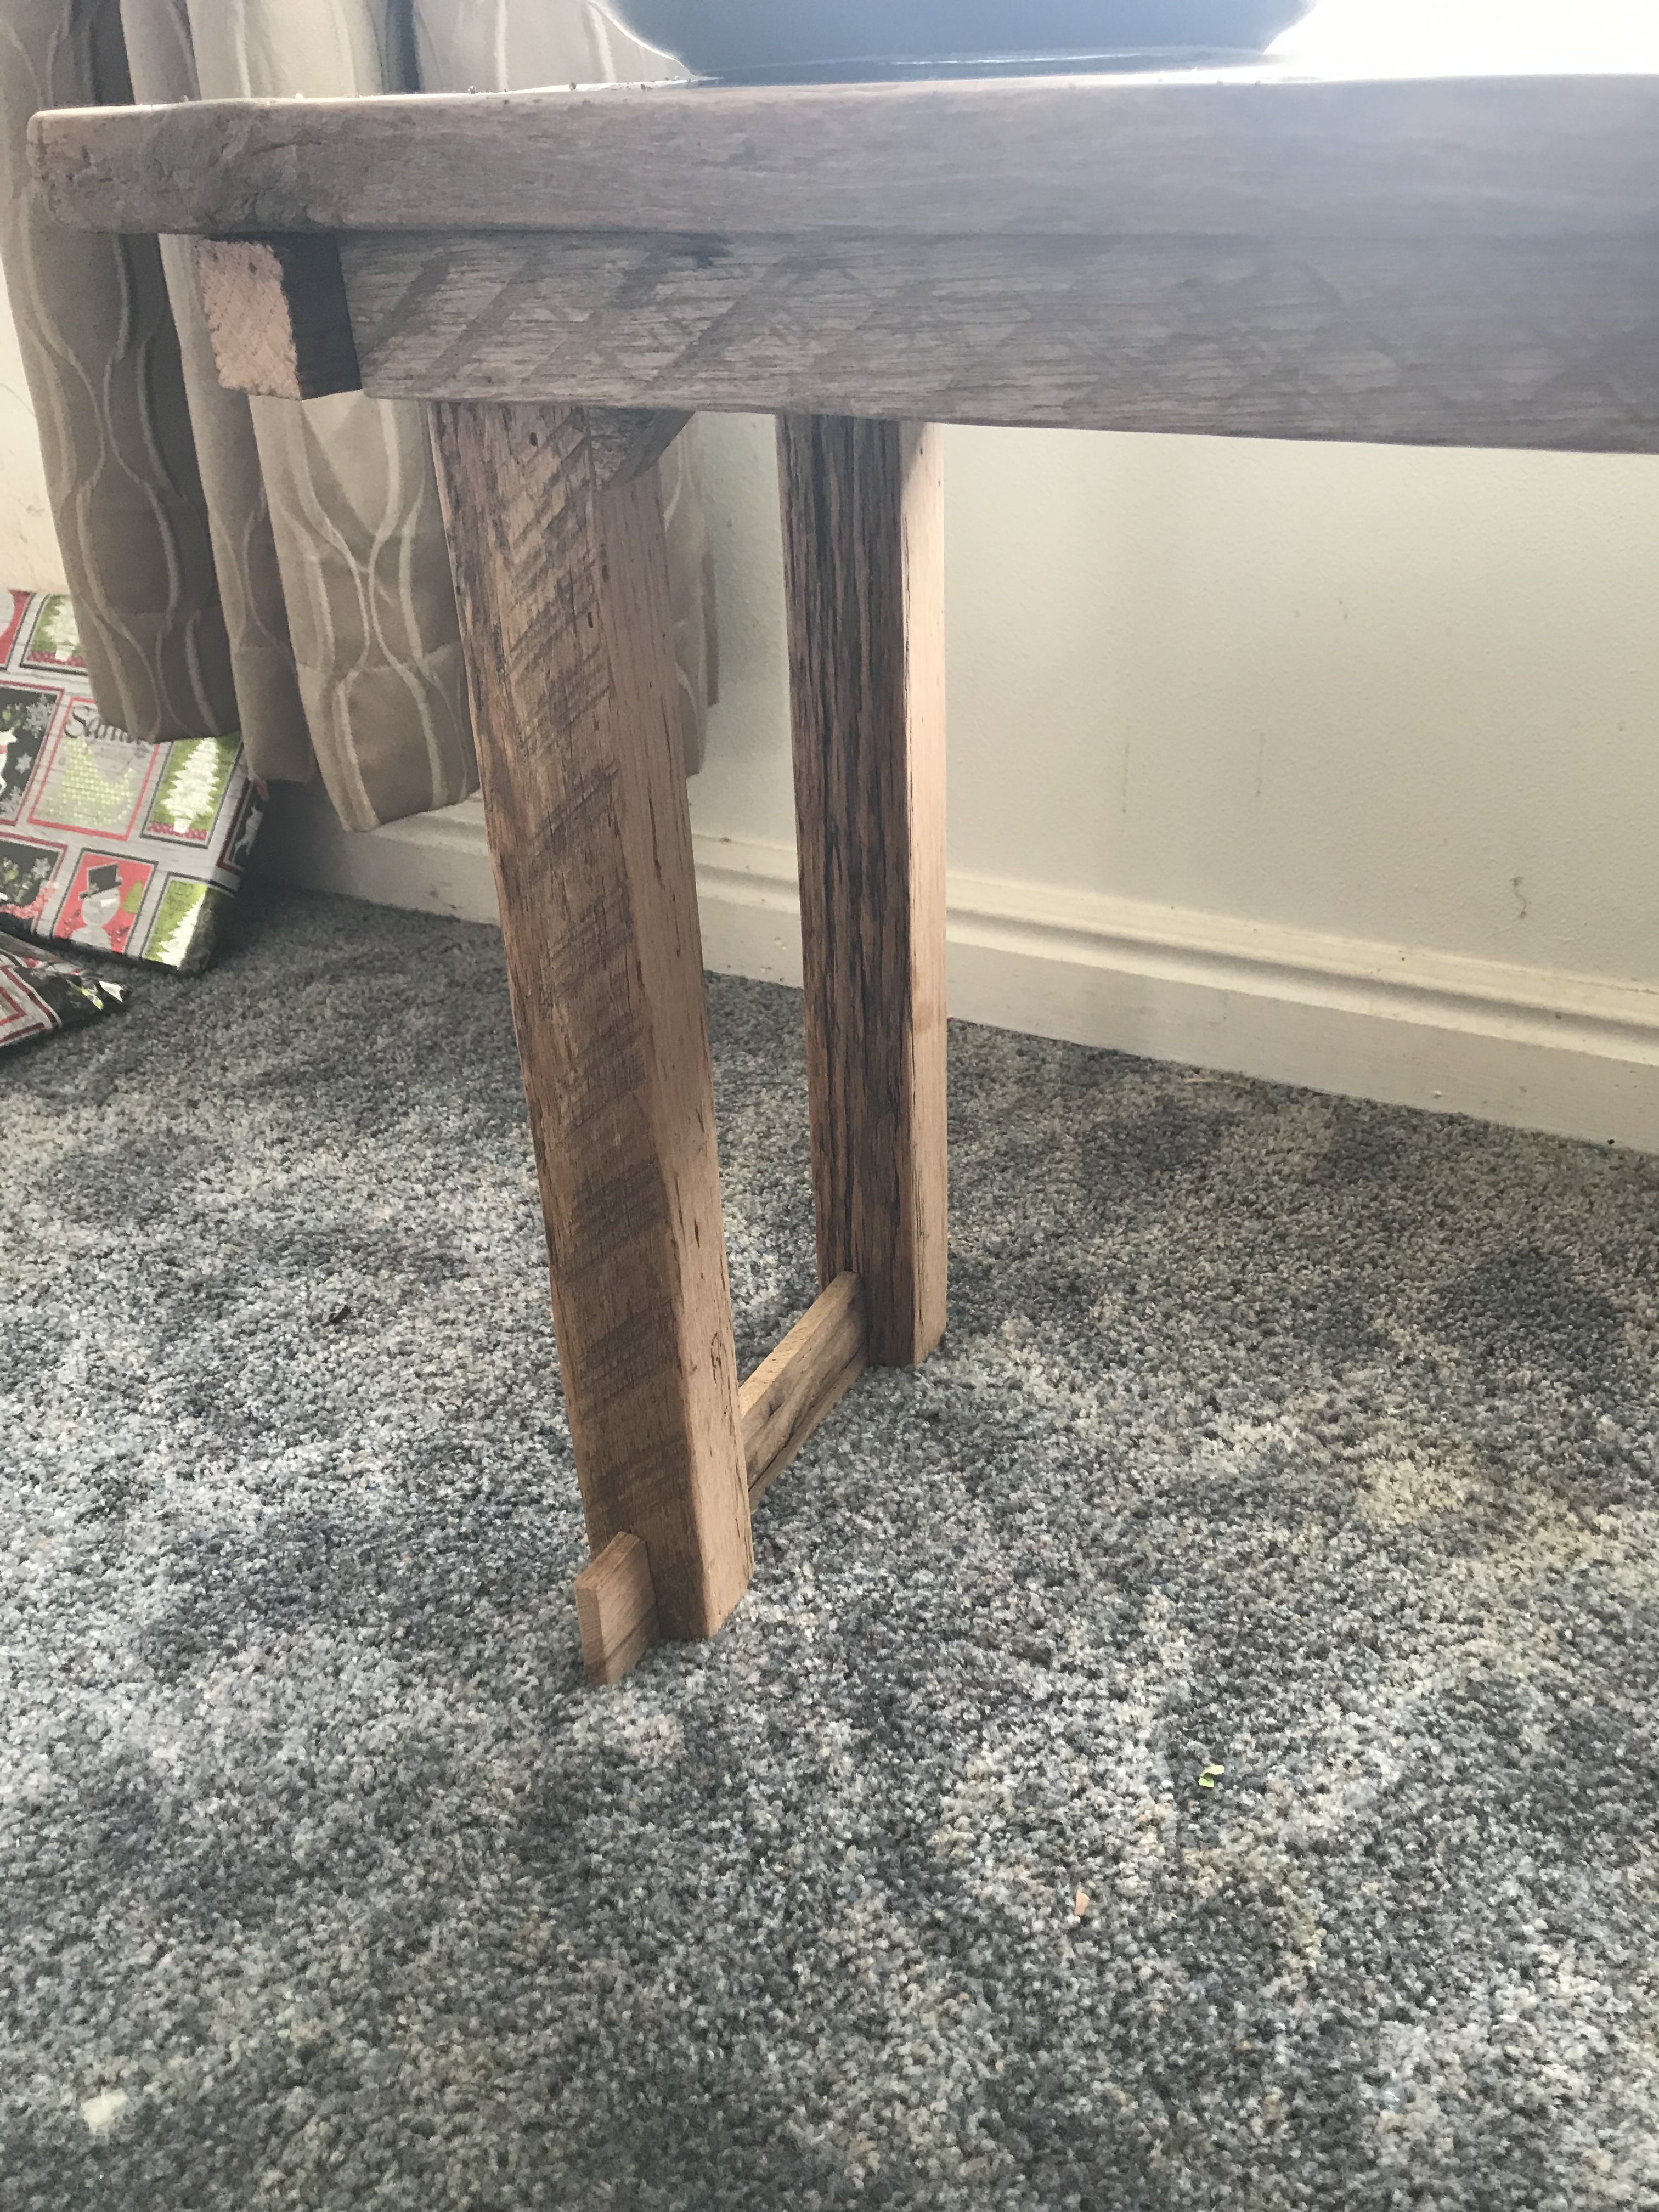 An oak barn wood bench with oak saw tooth marked skirt and legs sitting in front of a window on blue carpet